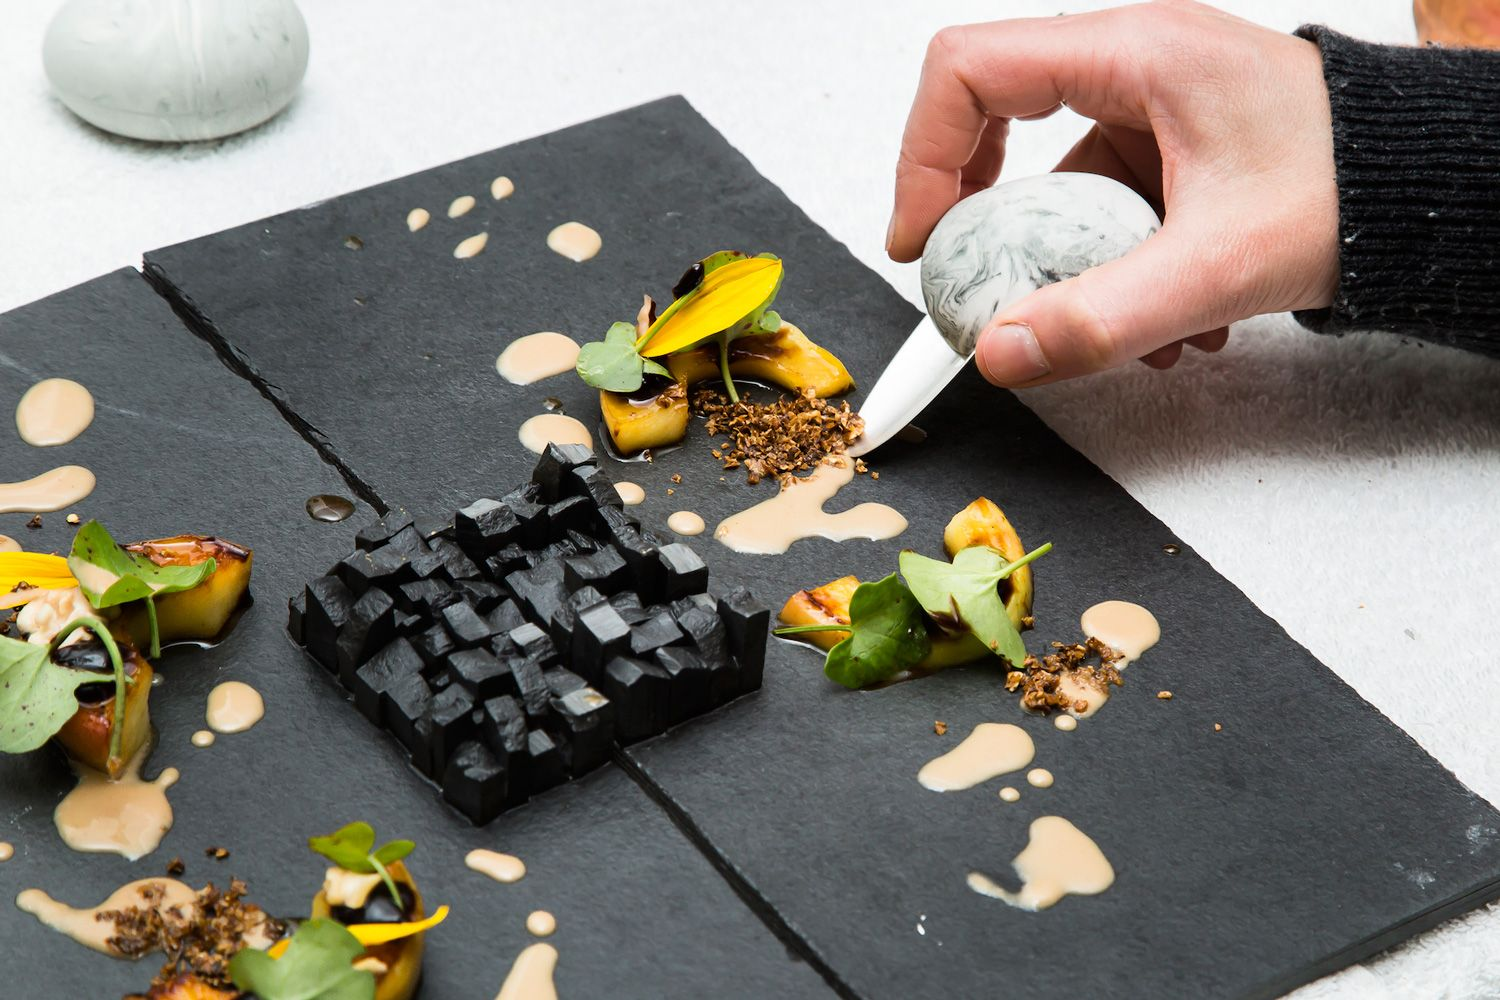 Steinbeisser Food Event, Edwin Vinke & De Kromme in Amsterdam | Yellowtrace - I'd feel so silly eating this.